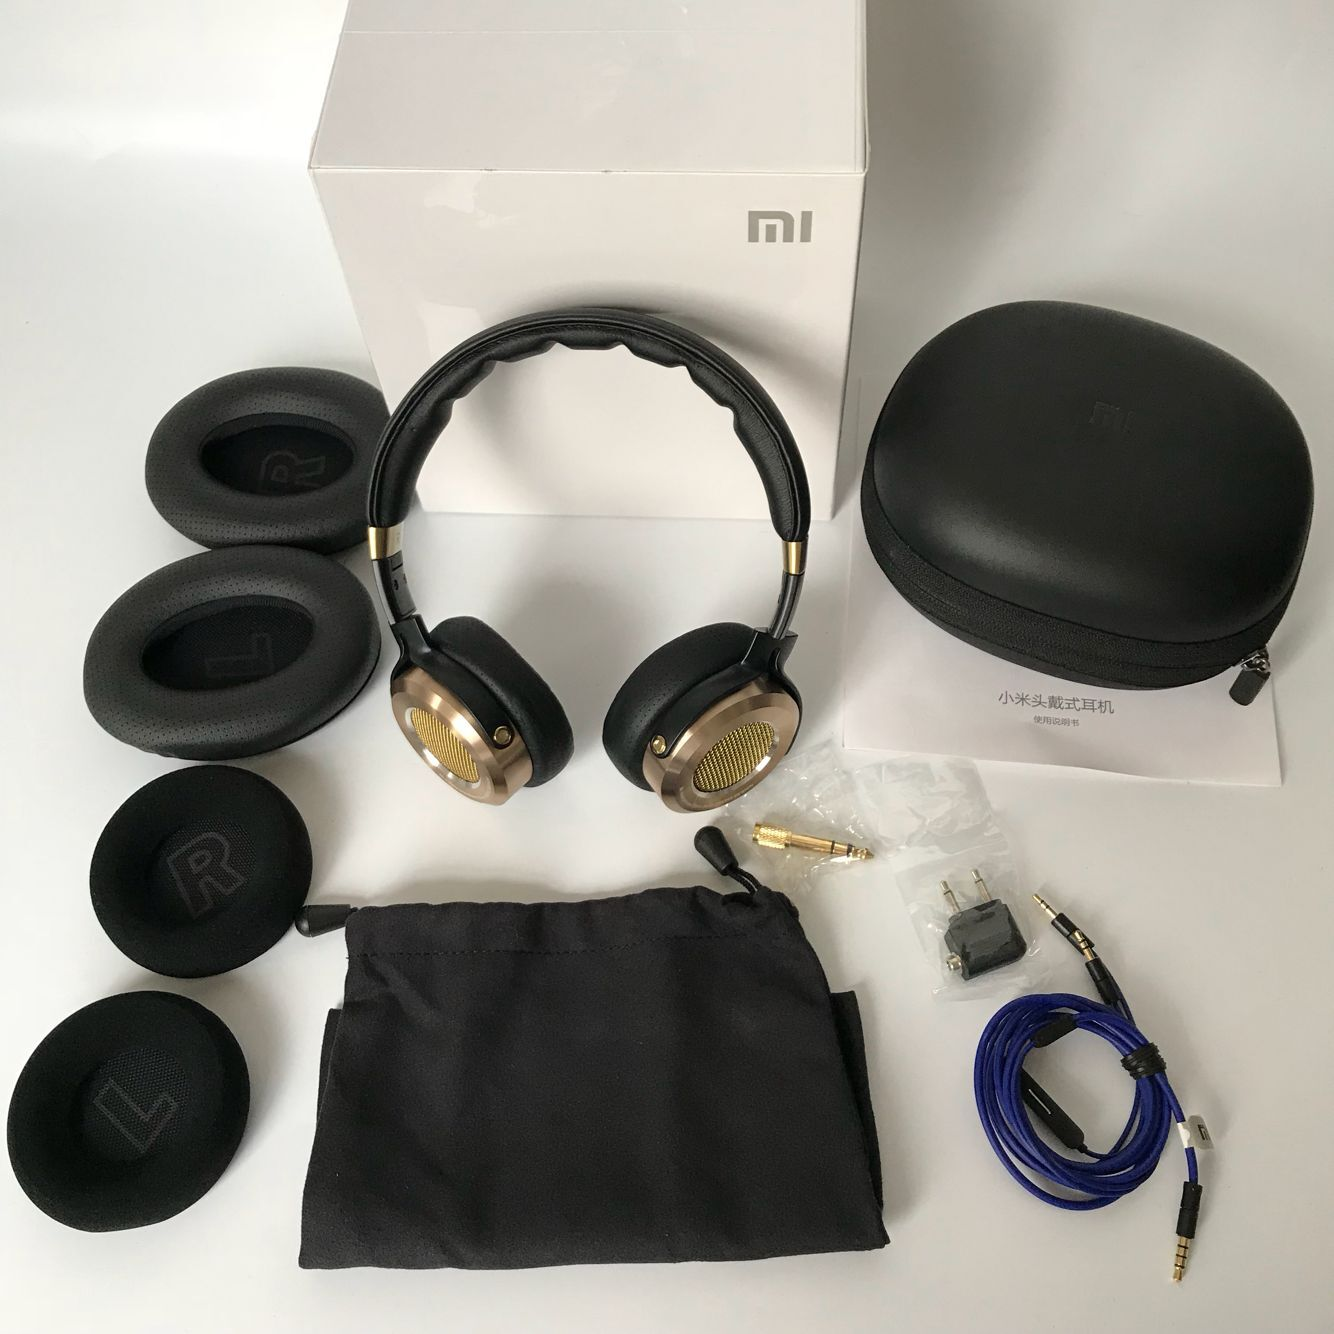 Original Xiaomi Dynamic Headphone Wired Control Hifi Music Monitor DJ Studio Earphones Hi-Res Audio Built-in MEMS Microphone 2017 originalty hi z earbud hp400se 400ohm hifi dj monitor music portable in ear wired earbuds earphones for iphone xiaomi htc